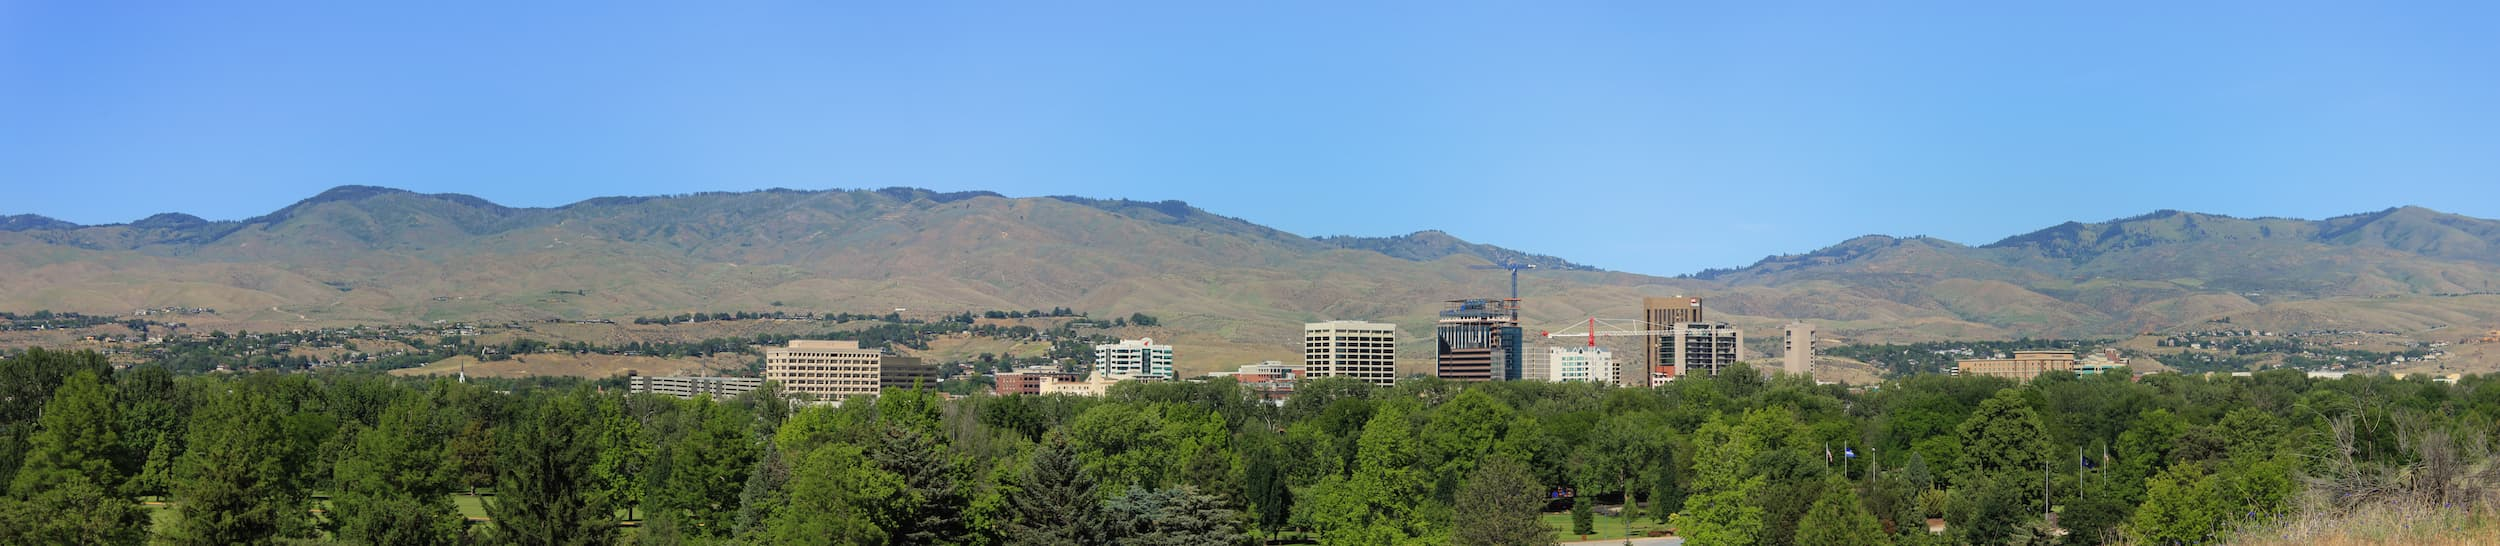 Skyline of Boise